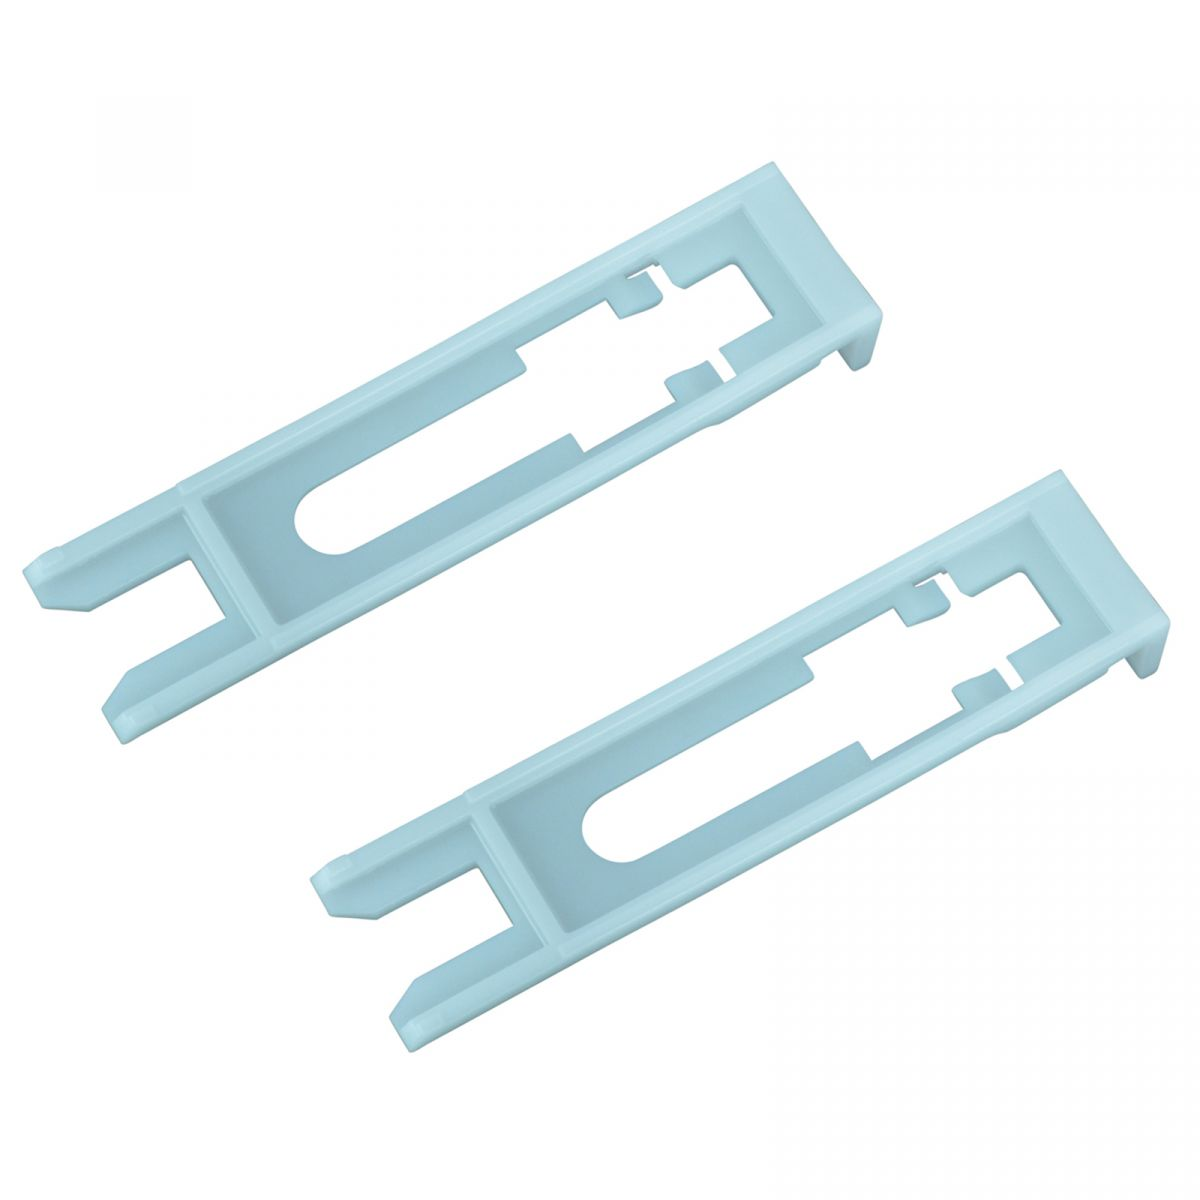 Details about OEM 10298115 Headlight Retainer Clip Pair Set of 2 for on